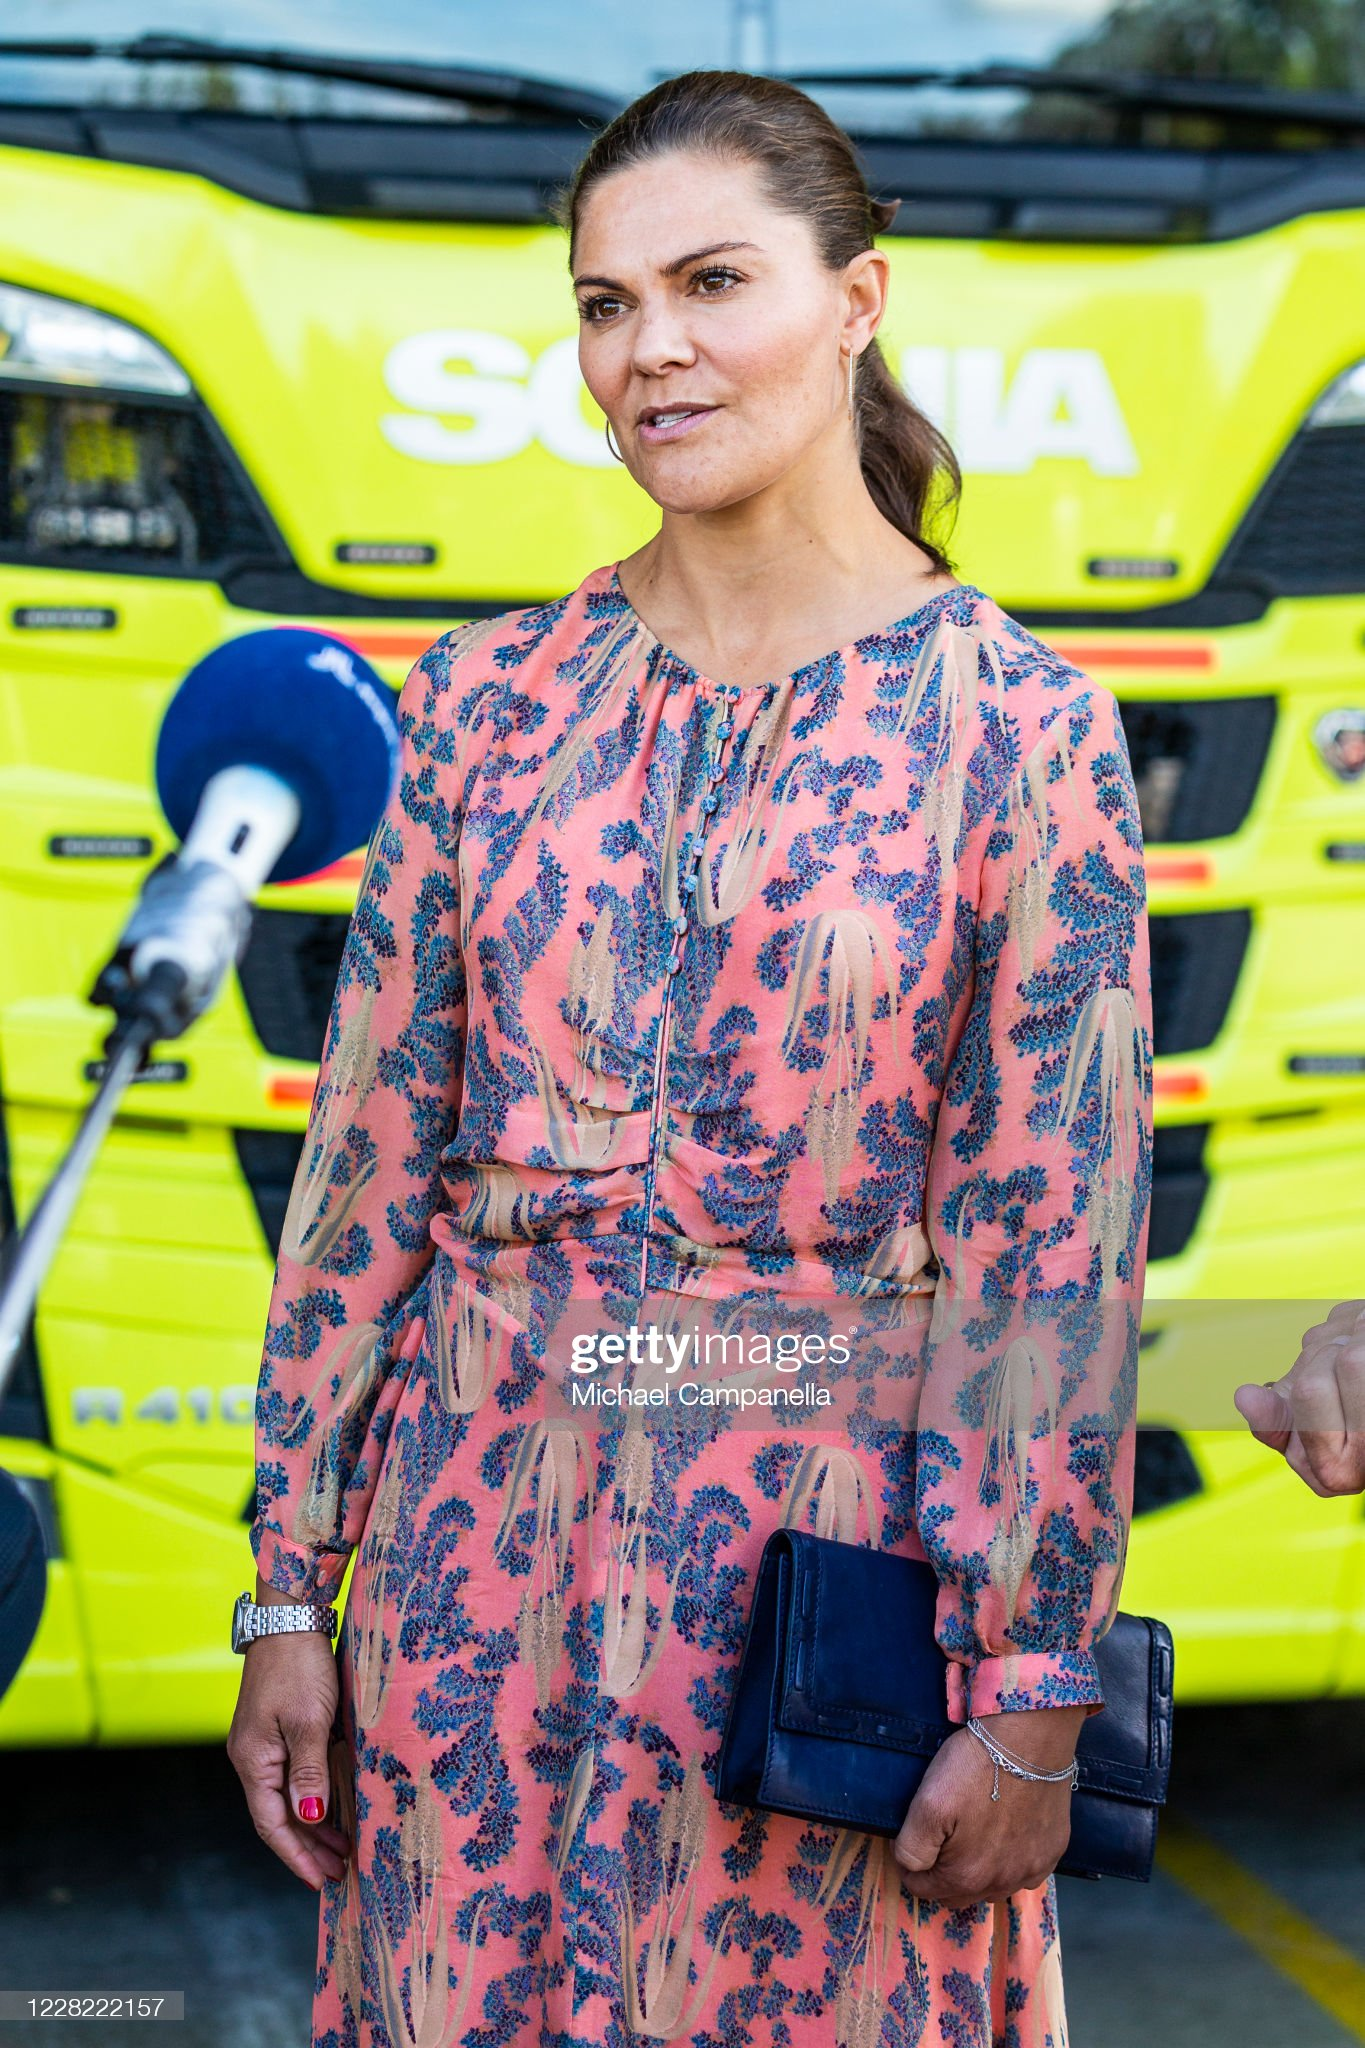 crown-princess-victoria-of-sweden-visits-an-ambulance-station-in-the-picture-id1228222157